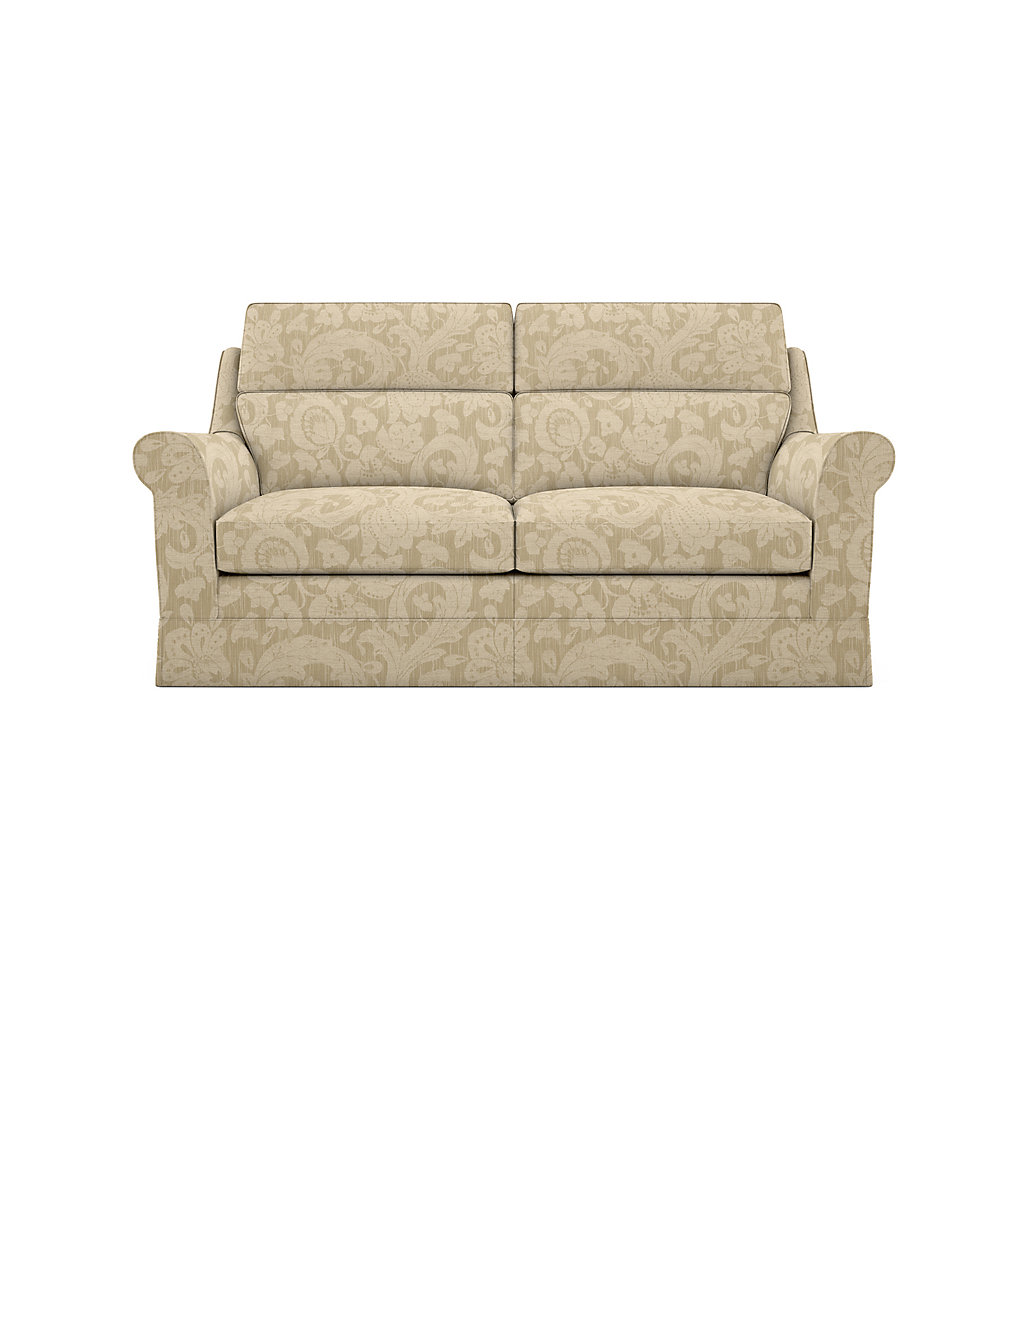 The Richmond Highback Medium Sofa